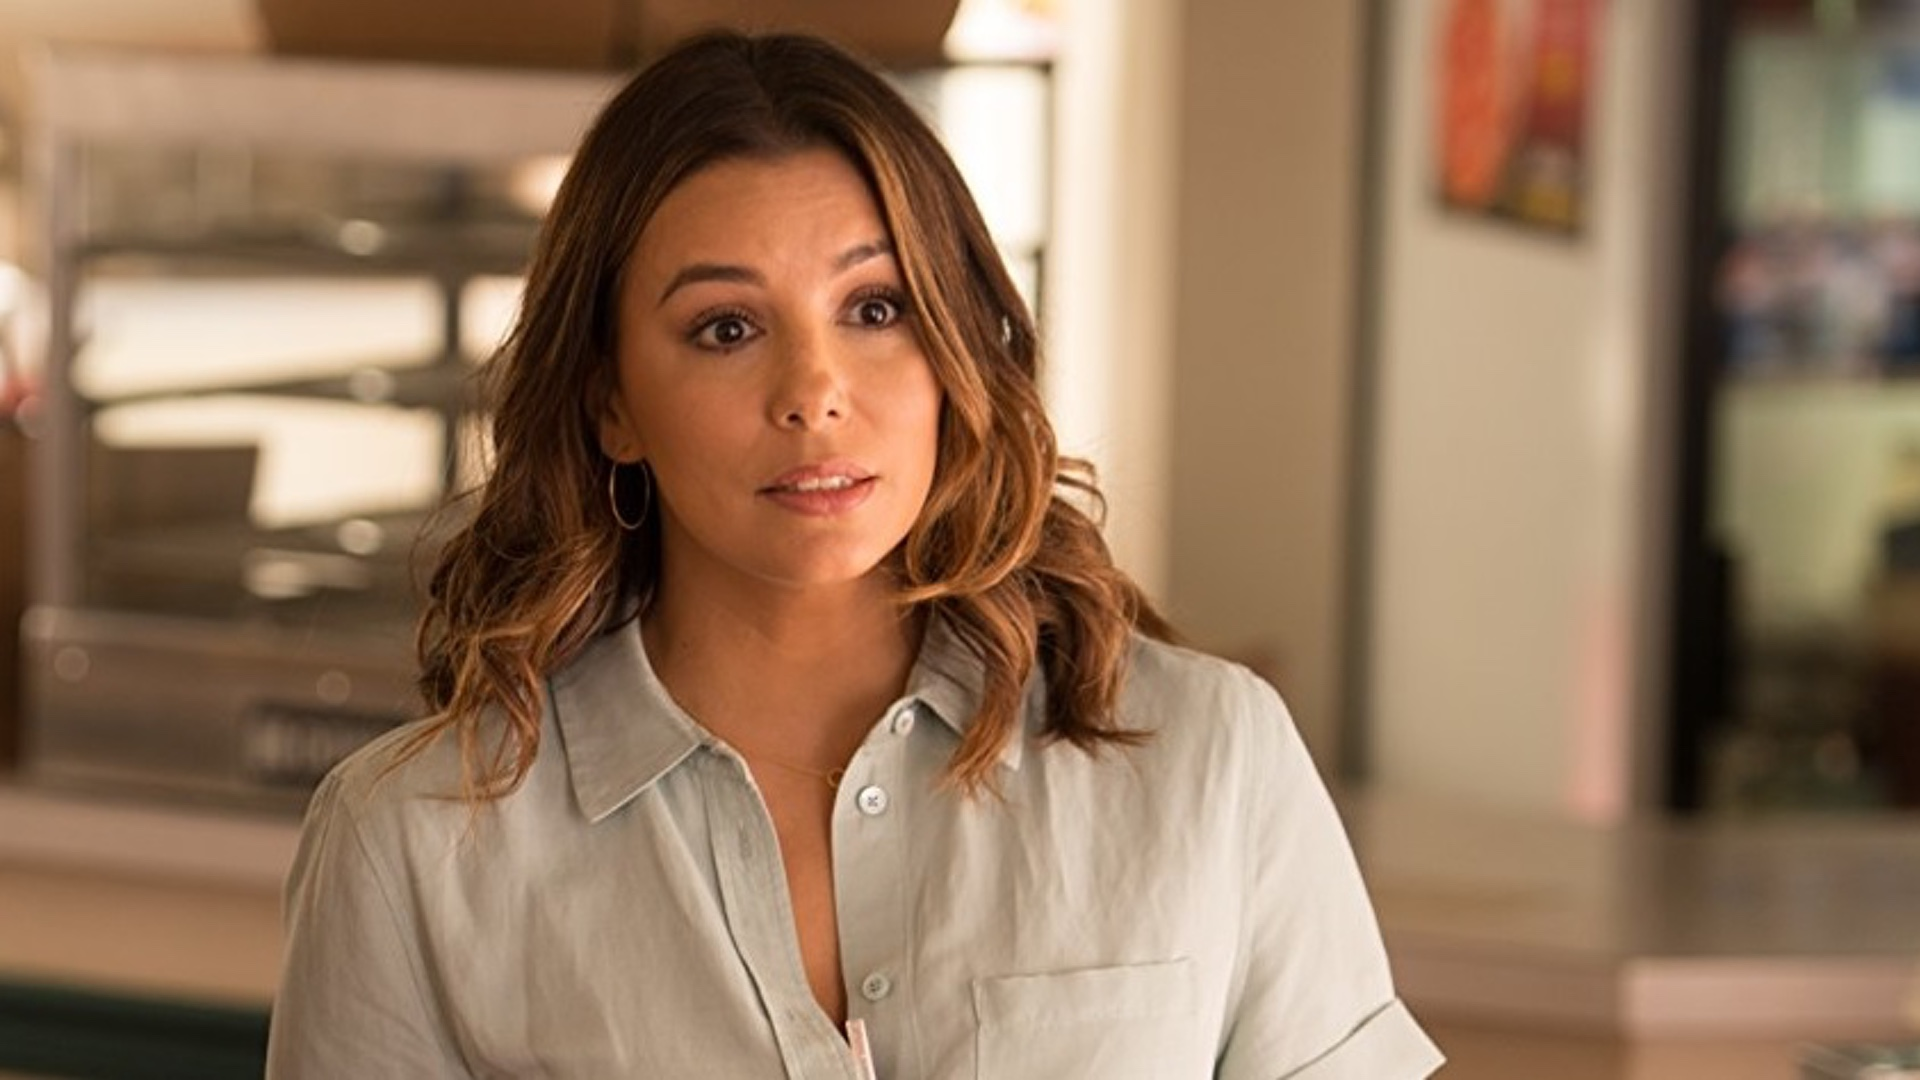 eva-longoria-is-directing-that-movie-about-flamin-hot-cheetos-social.jpg